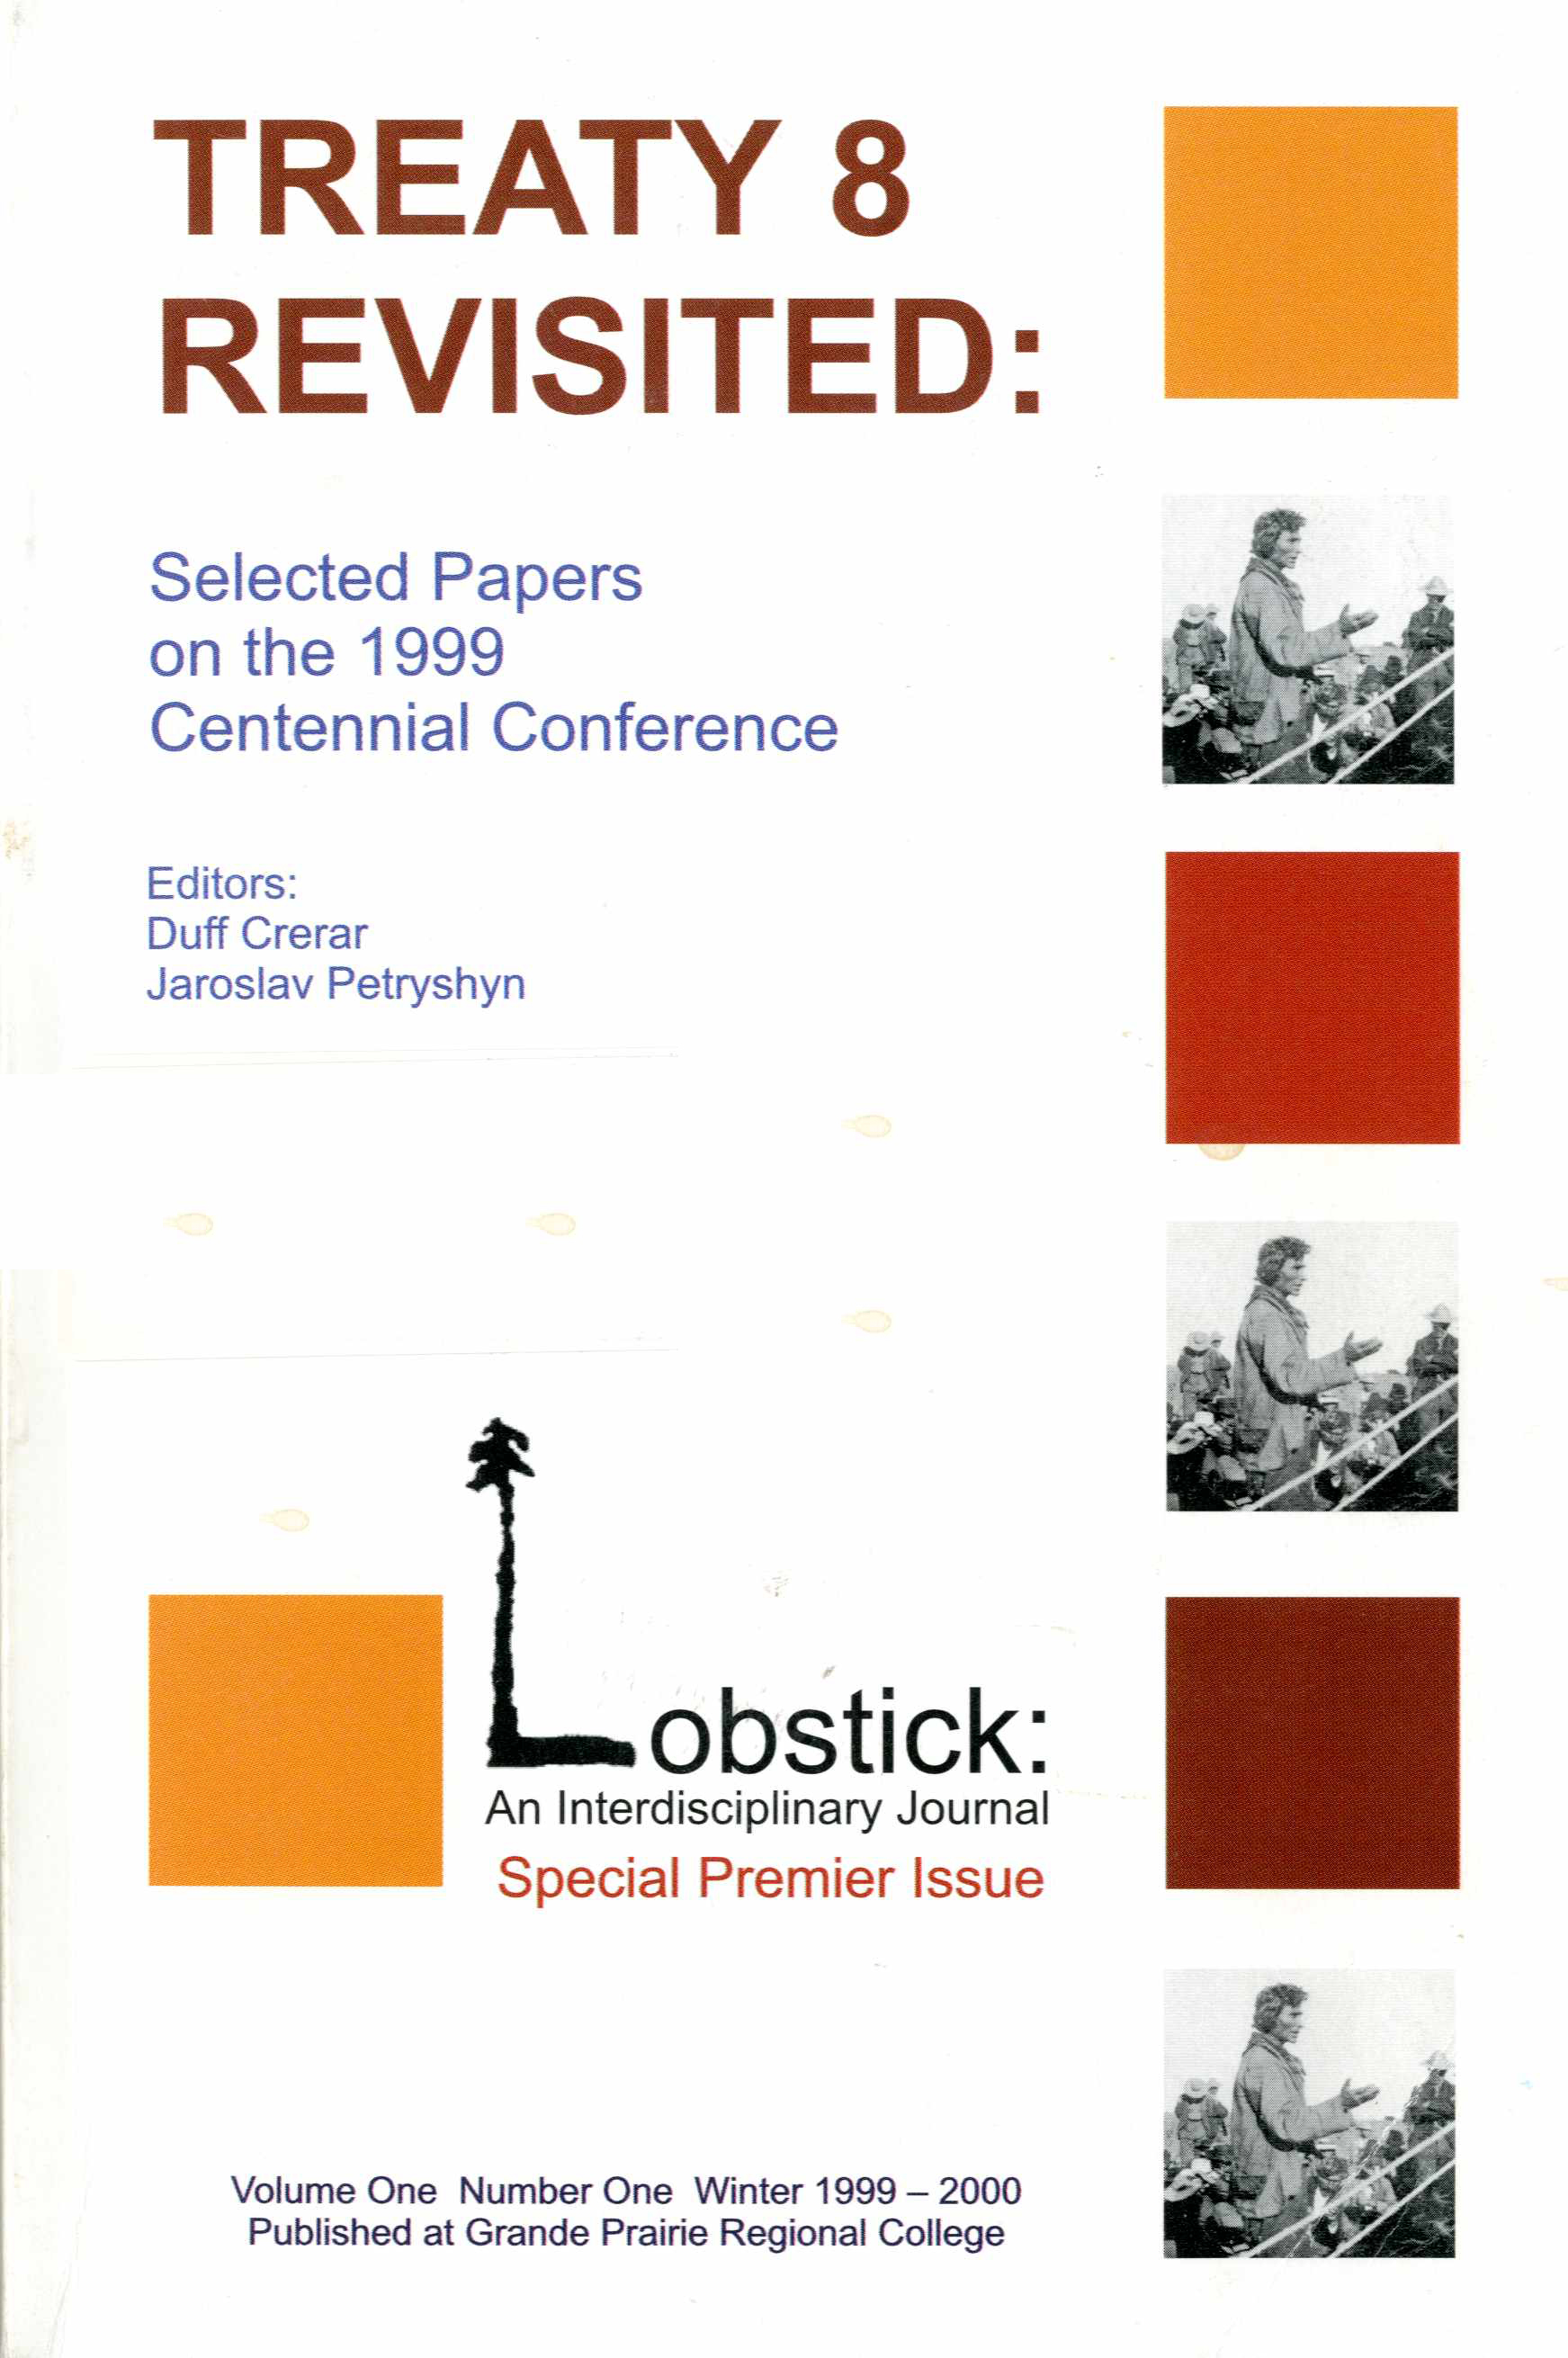 Treaty 8 Revisited: Selected Papers on  the 1999 Centennial Conference Image